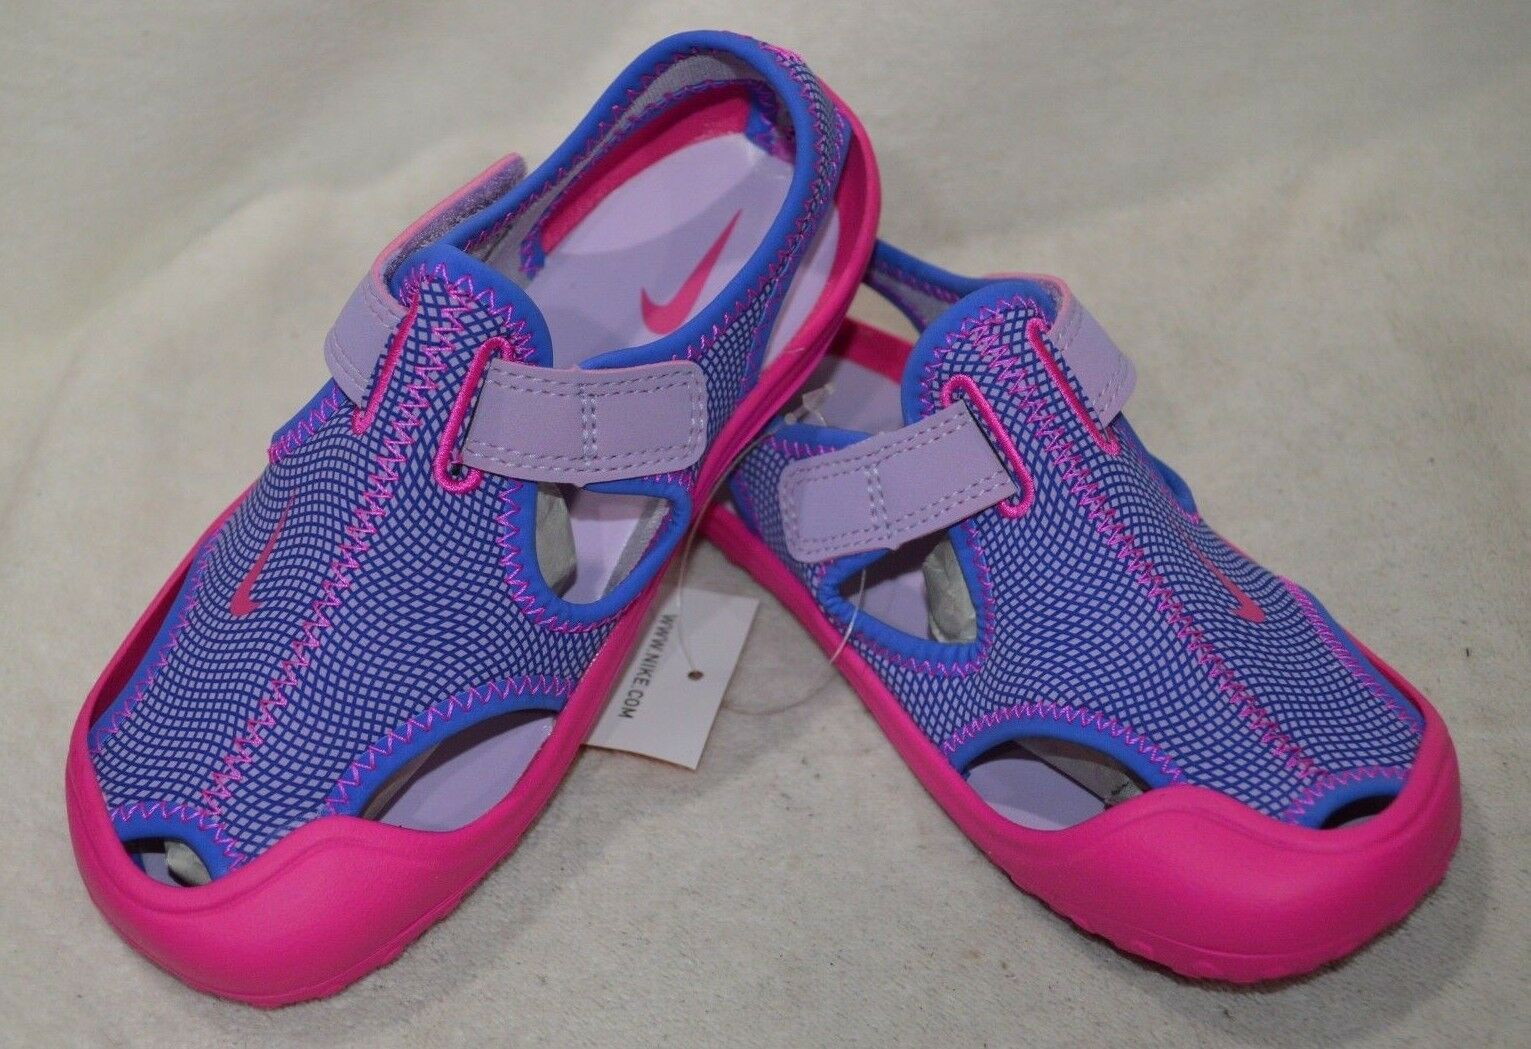 1b343a4dfa65 Girls Size 13 Nike Sunray Protect PS Water Shoes Sandals Purple Pink ...